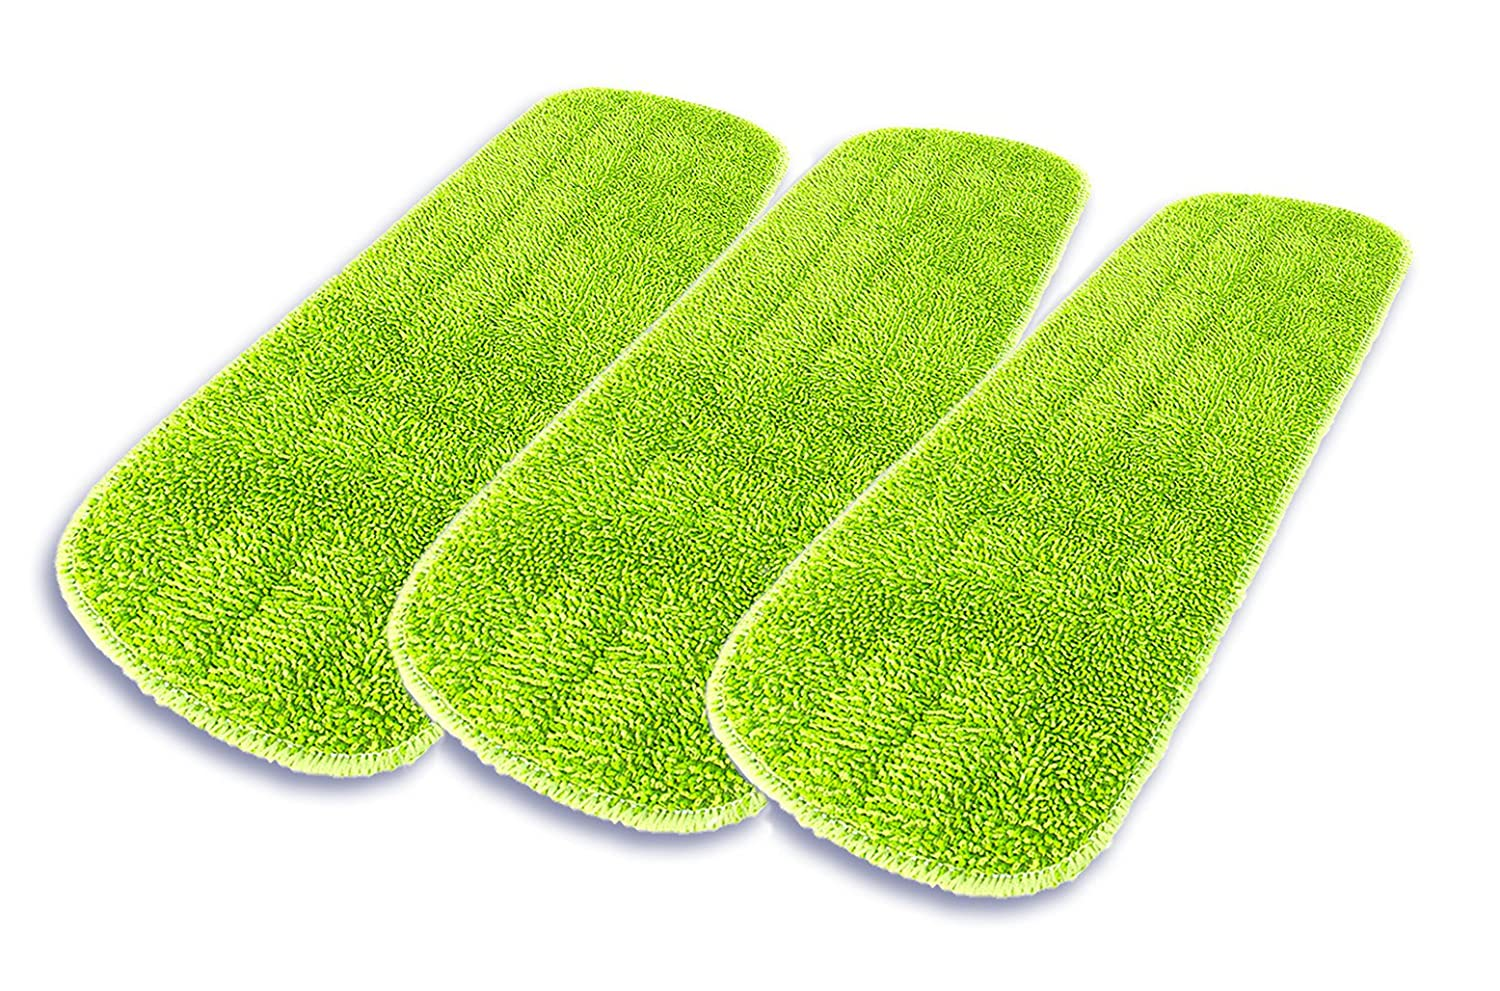 Washable Reusable Dry Home Professional 17 Microfiber Wet and Dry Mop Head Refill 3 Pack for Wet Scrubbing and Dusting Kitchen